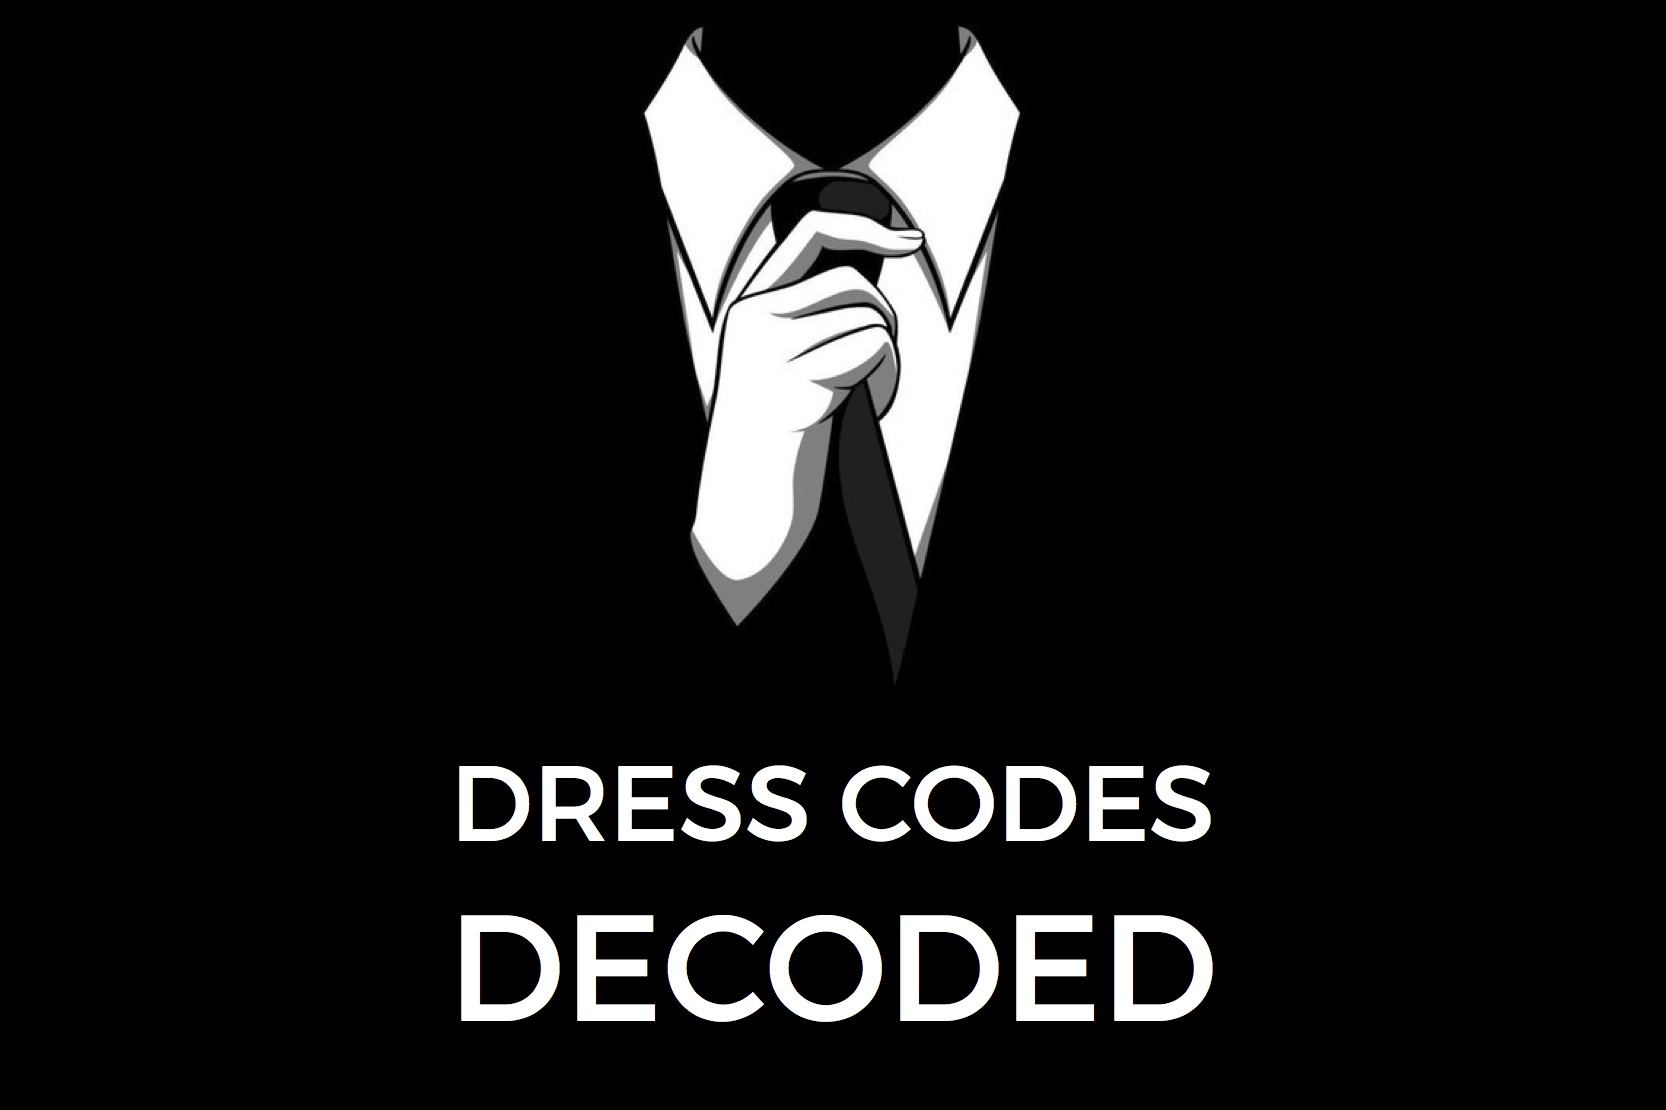 Dress codes for men decoded Lustin Style